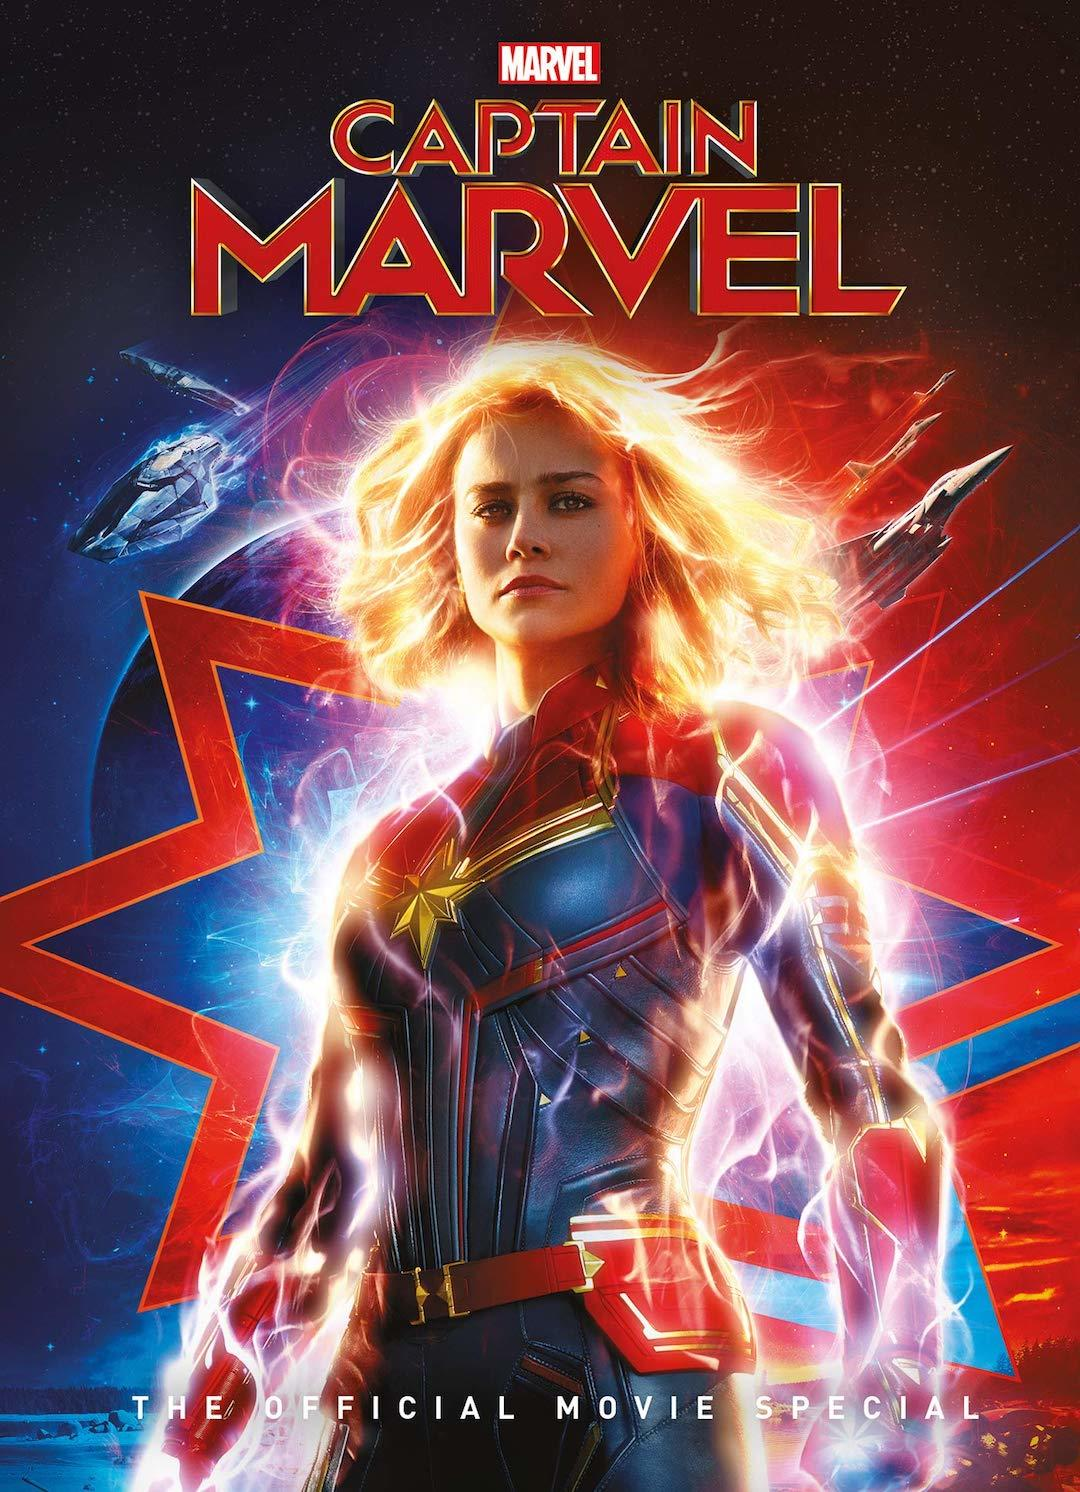 What Have We Learned About Special >> 7 Things We Learned In Captain Marvel The Official Movie Special